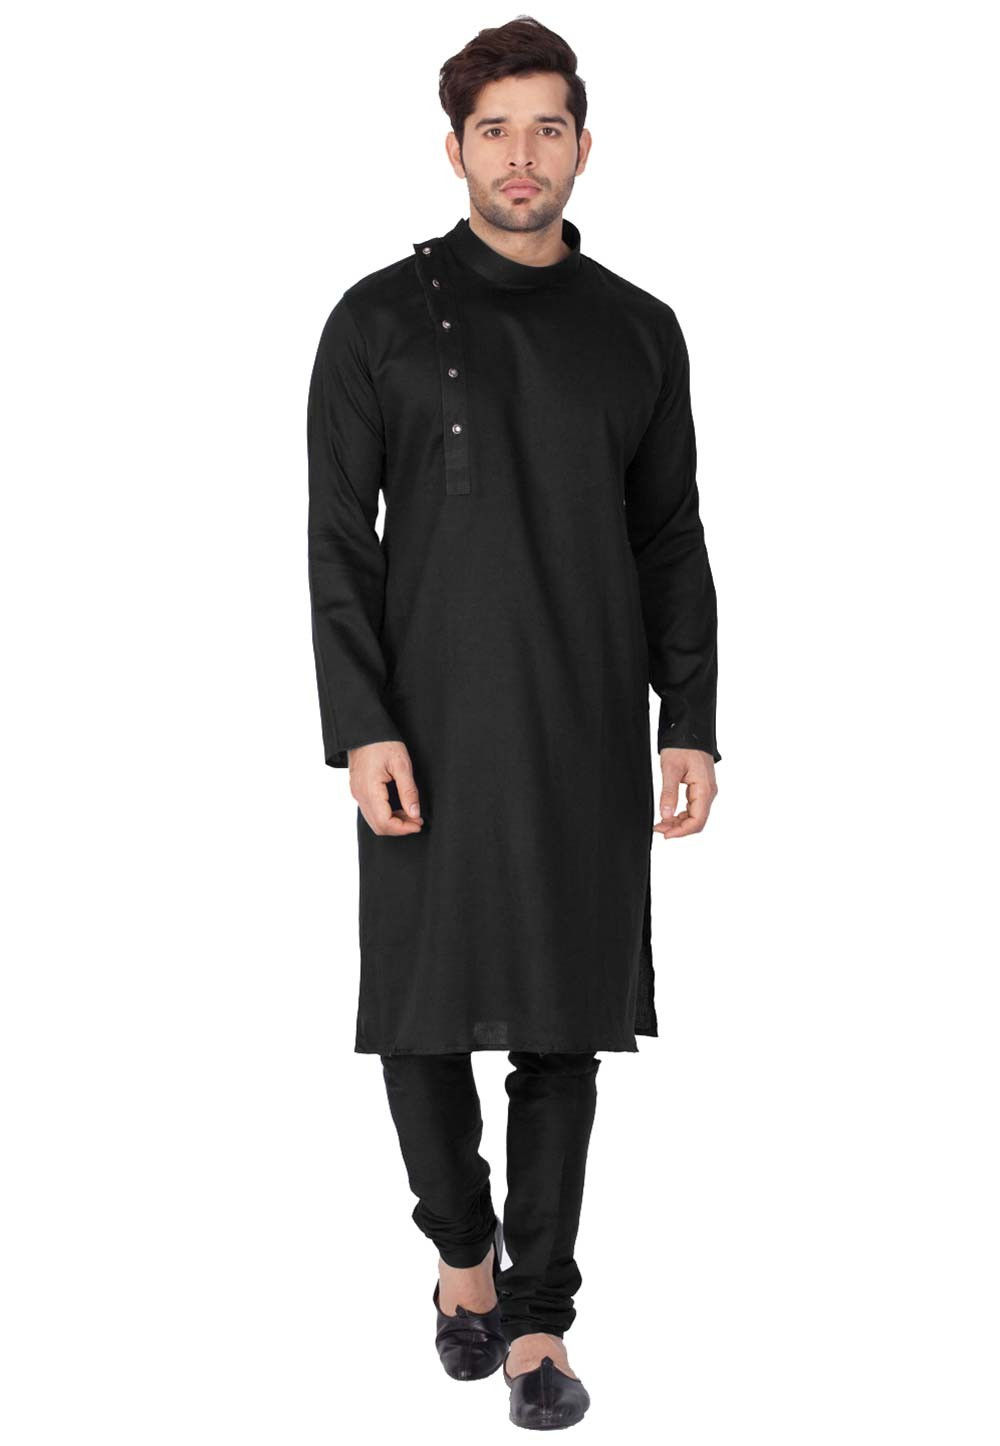 Black Color Party Wear Indian kurta pajama for mens